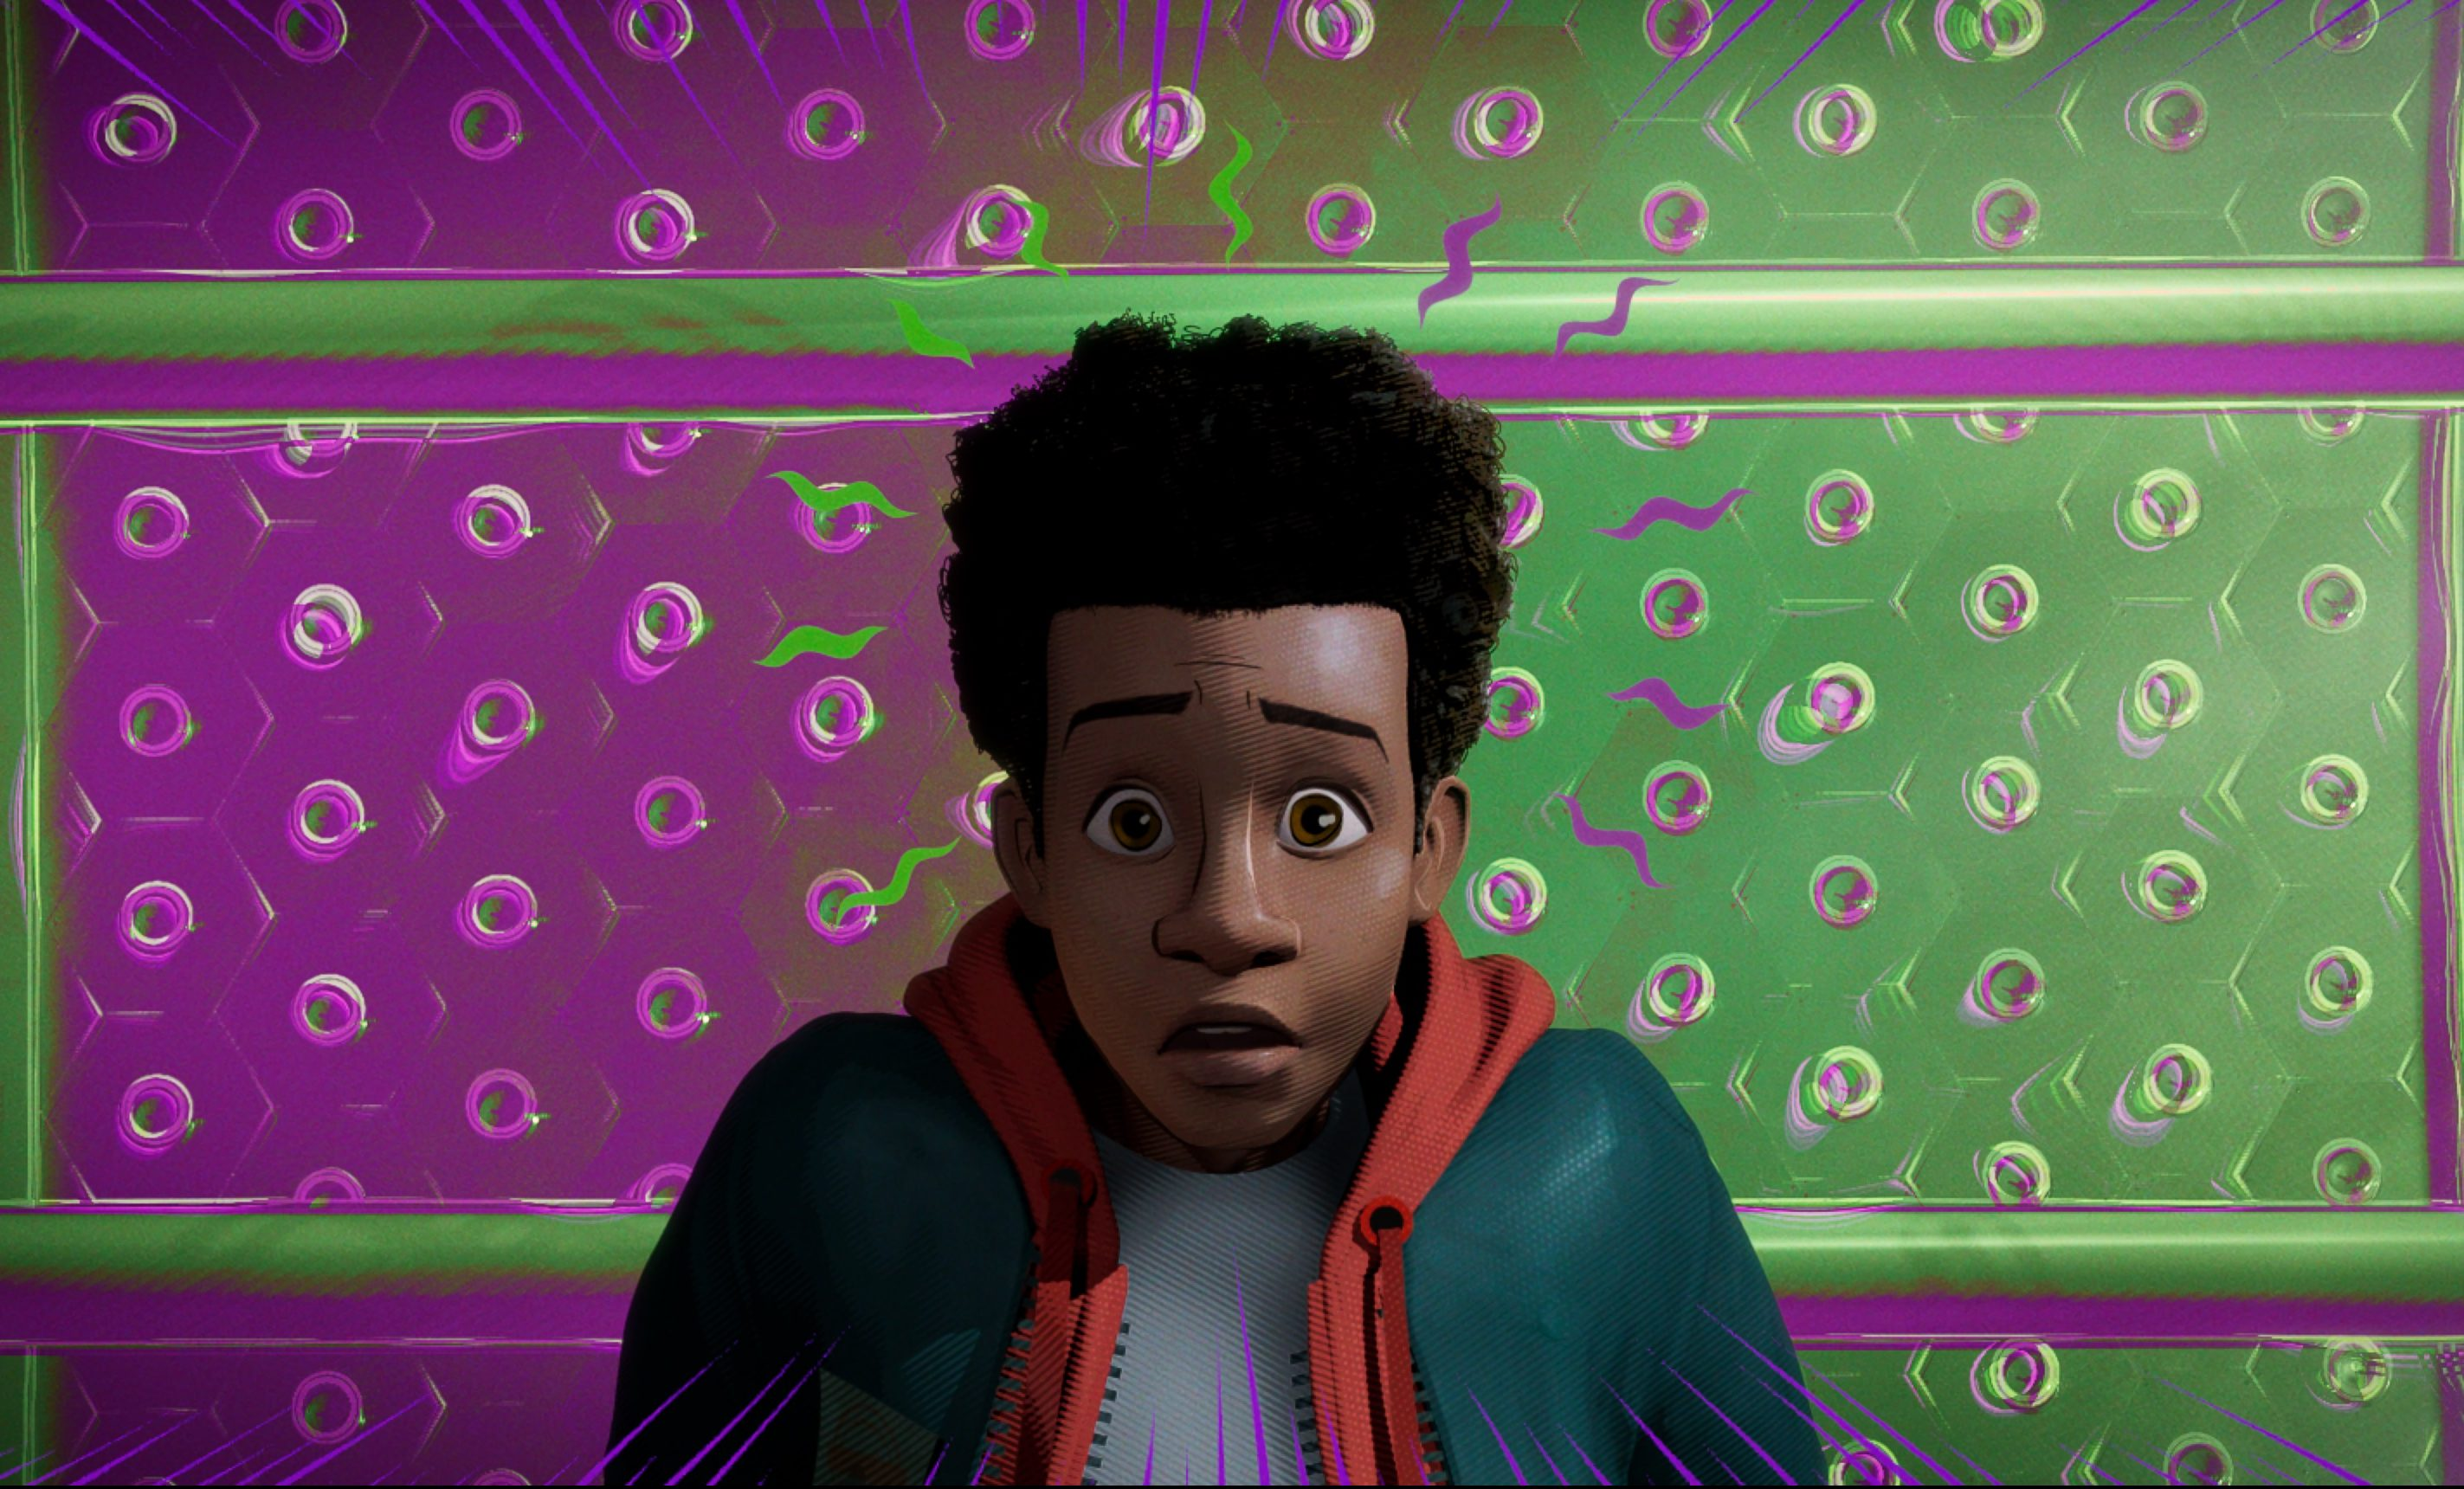 'Spider-Man: Into the Spider-Verse' Wins Golden Globe For Best Animated Film